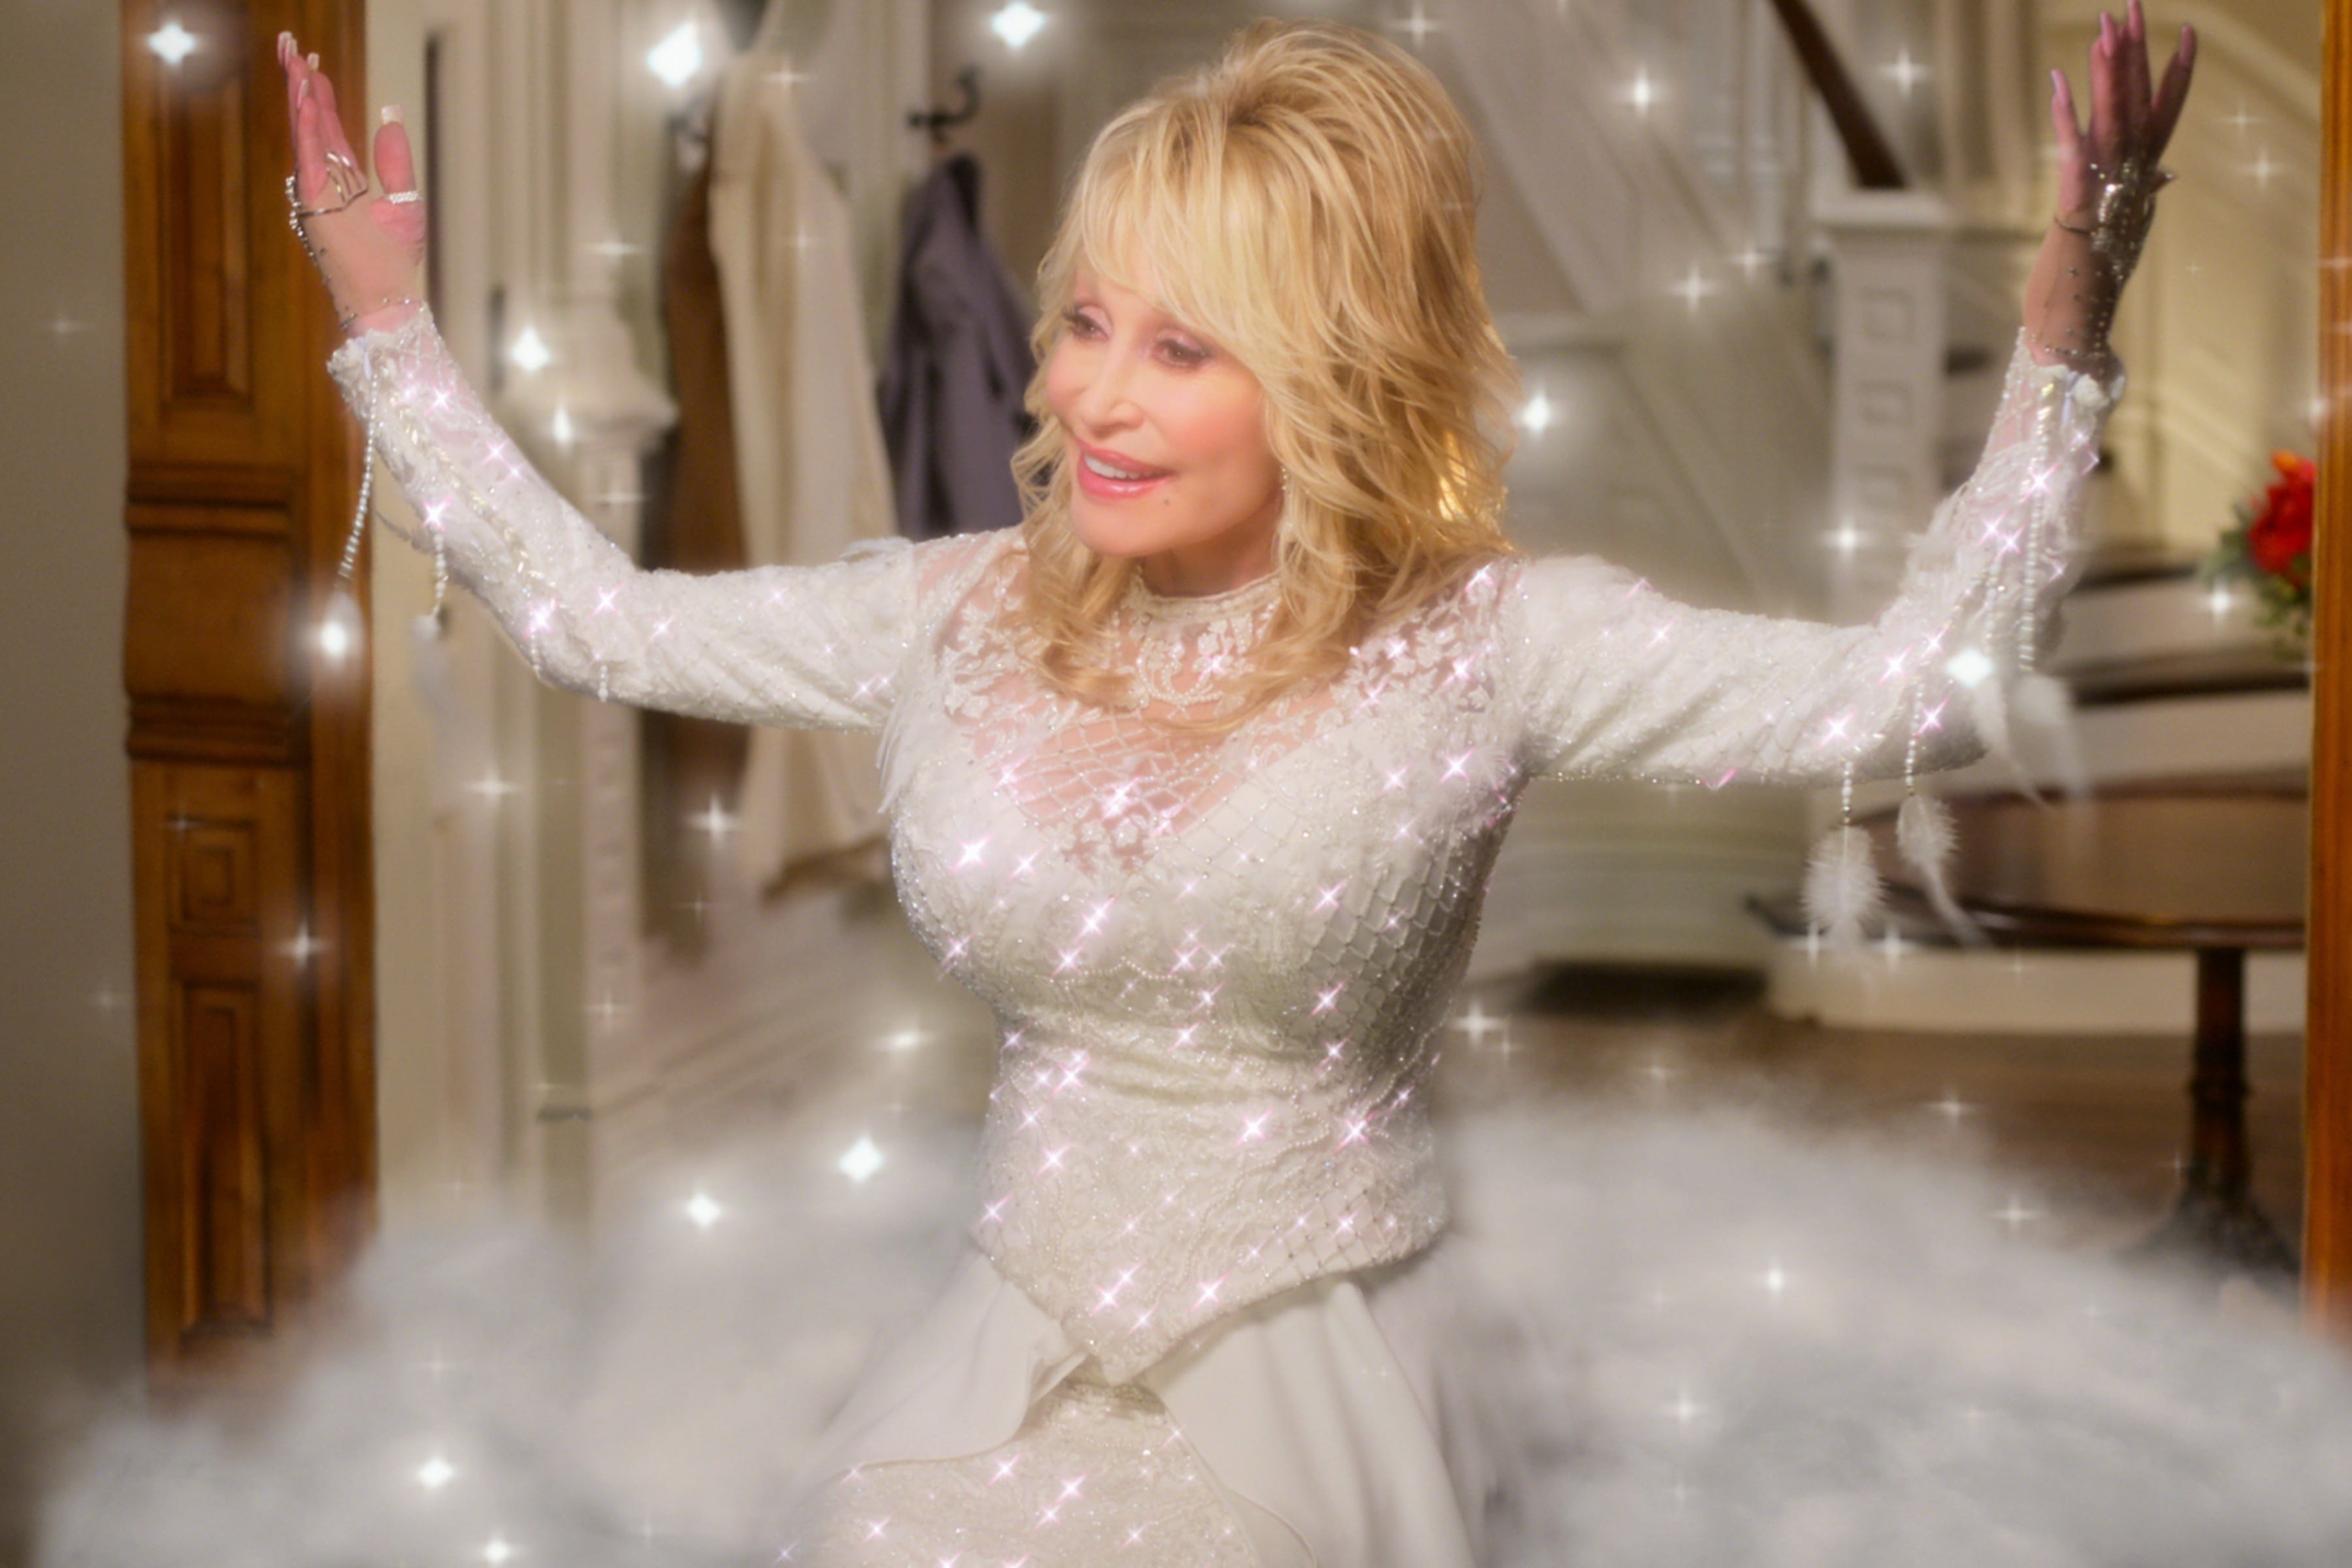 Dolly Parton on Netflix's 'Christmas on the Square': We need some joy